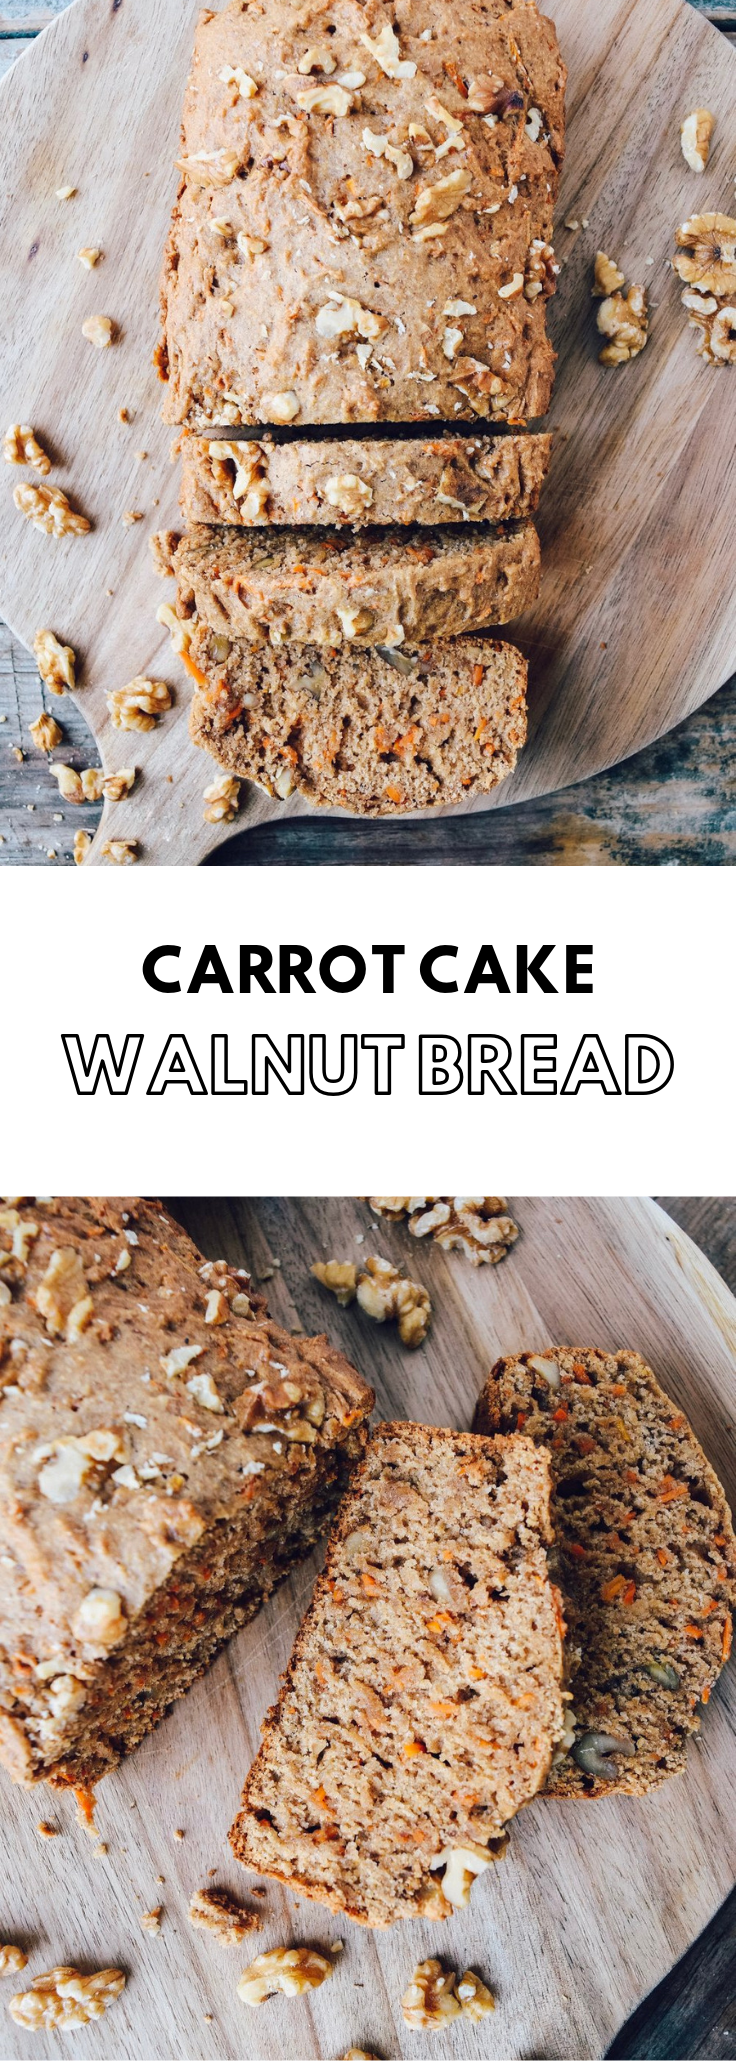 carrot-cake-walnut-bread-vegan-gluten-free-recipe.jpg